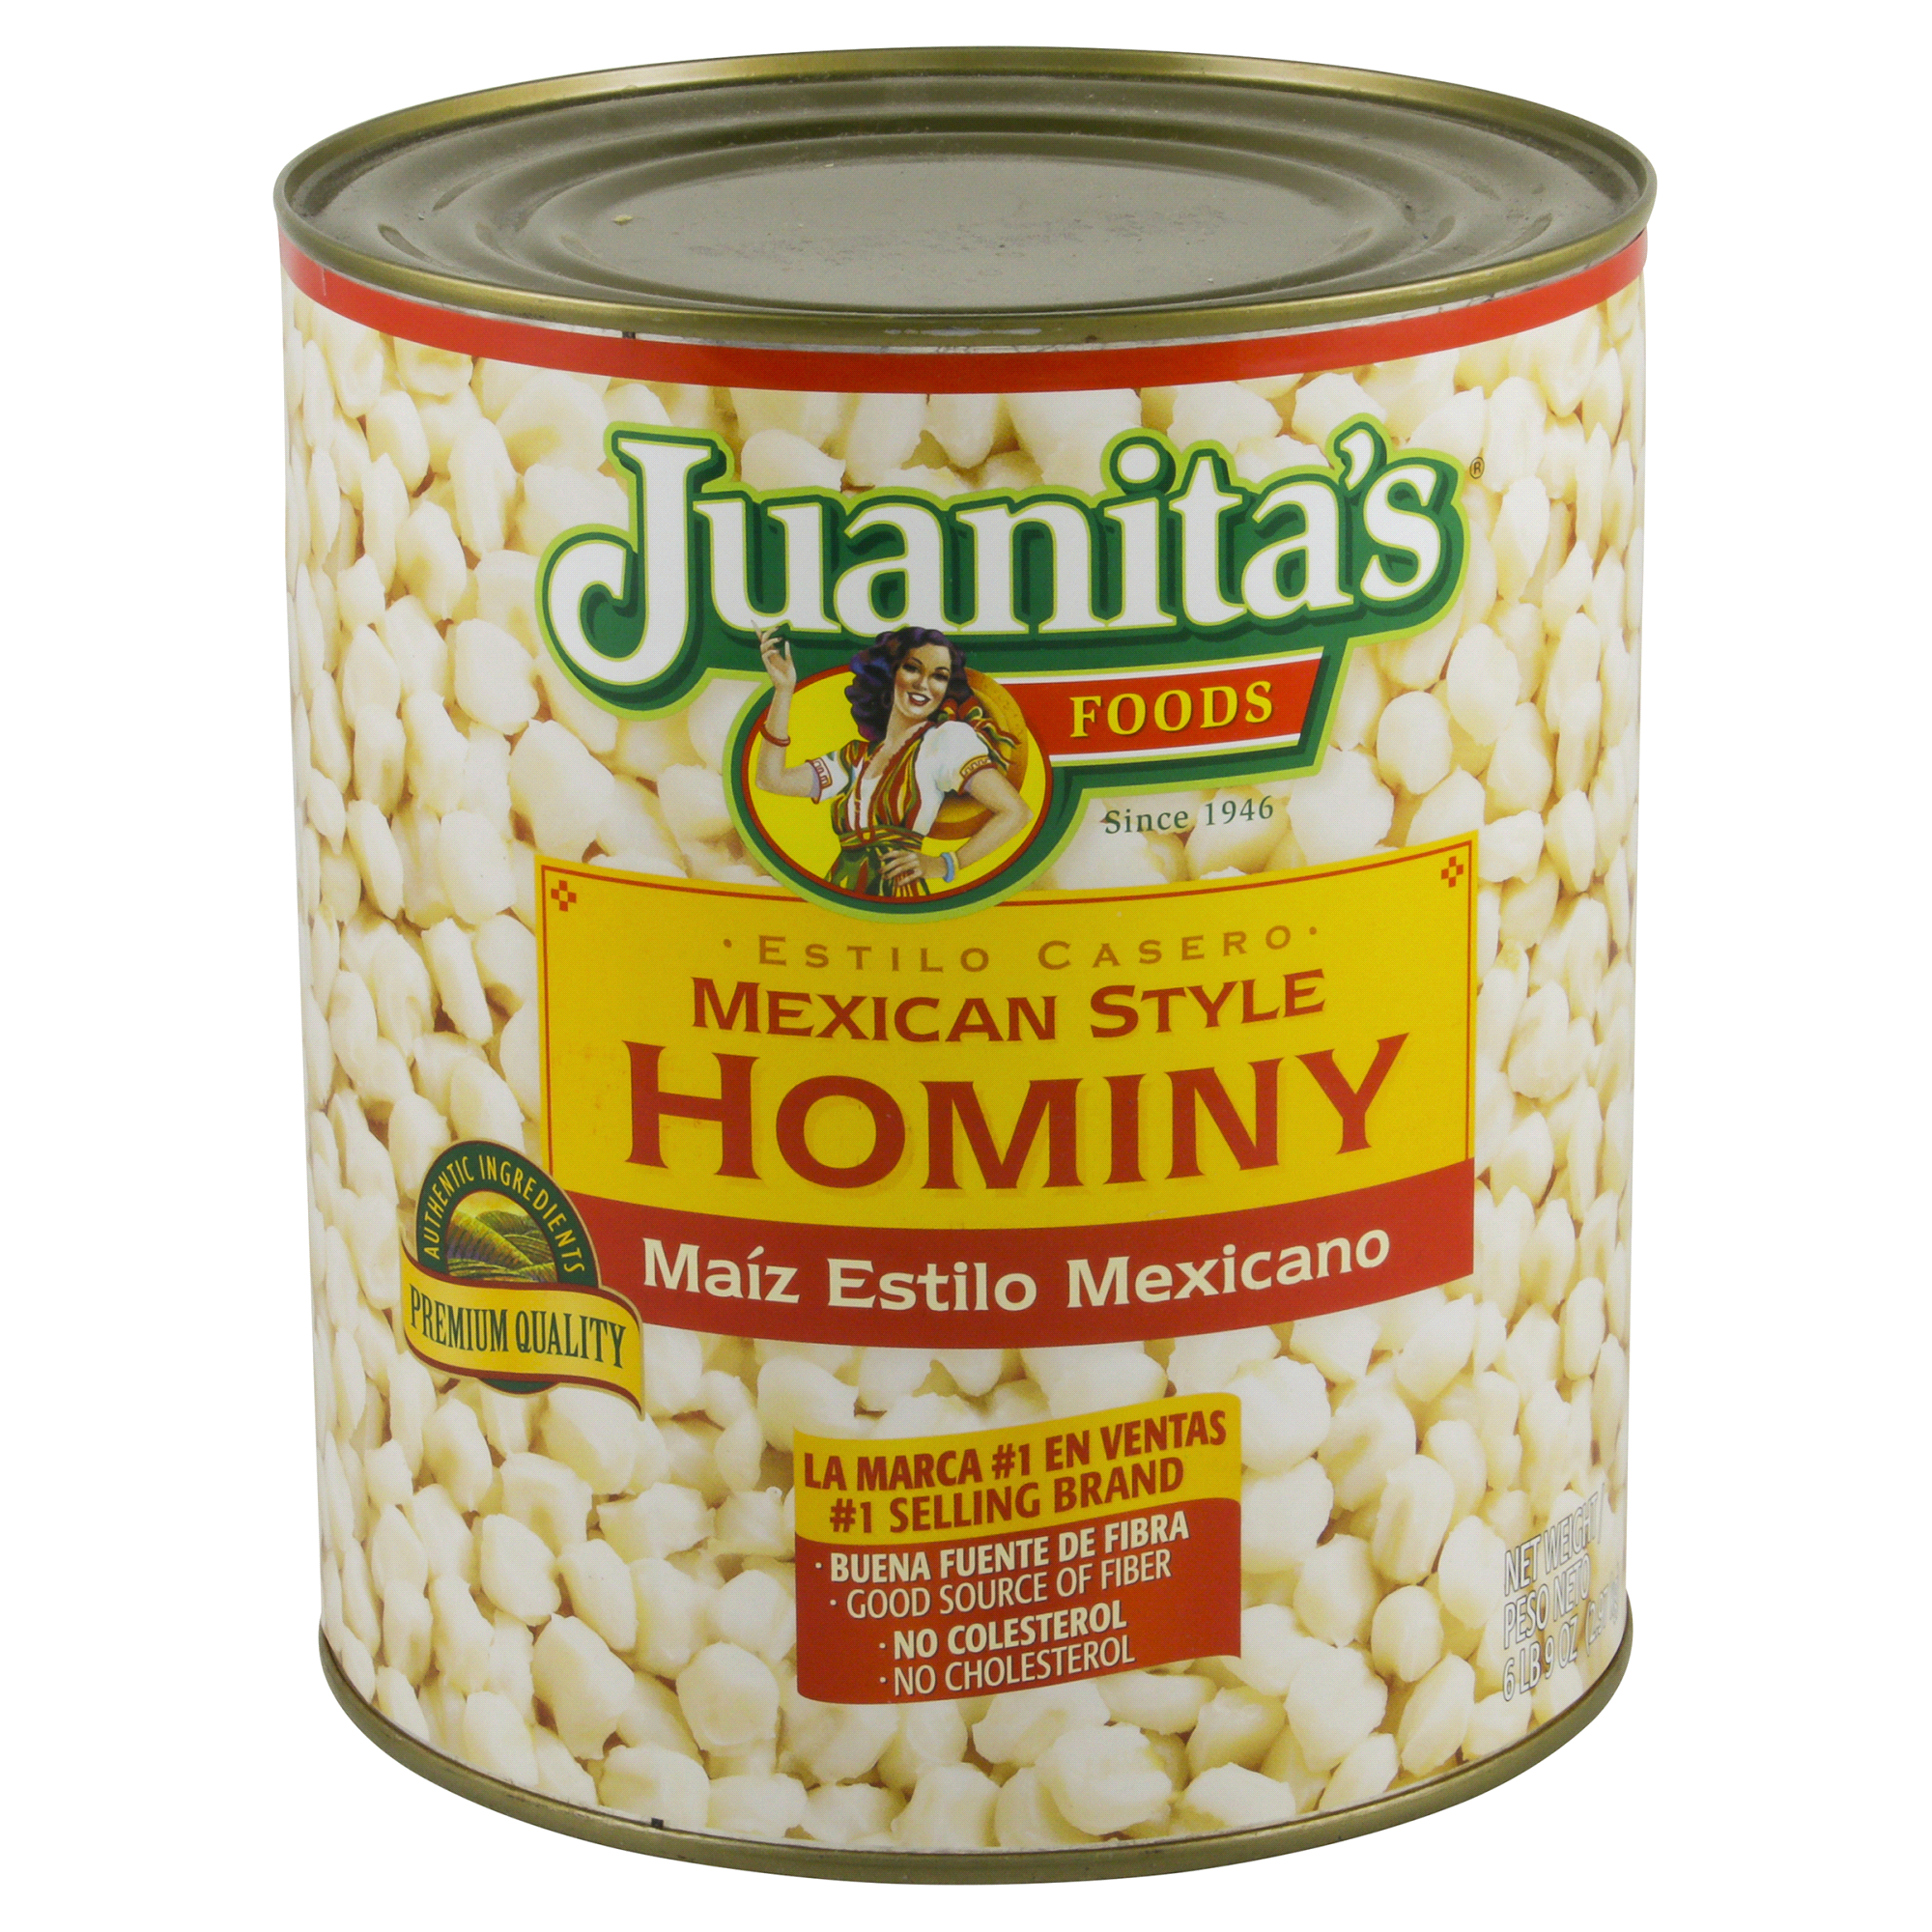 How to cook hominy for fishing